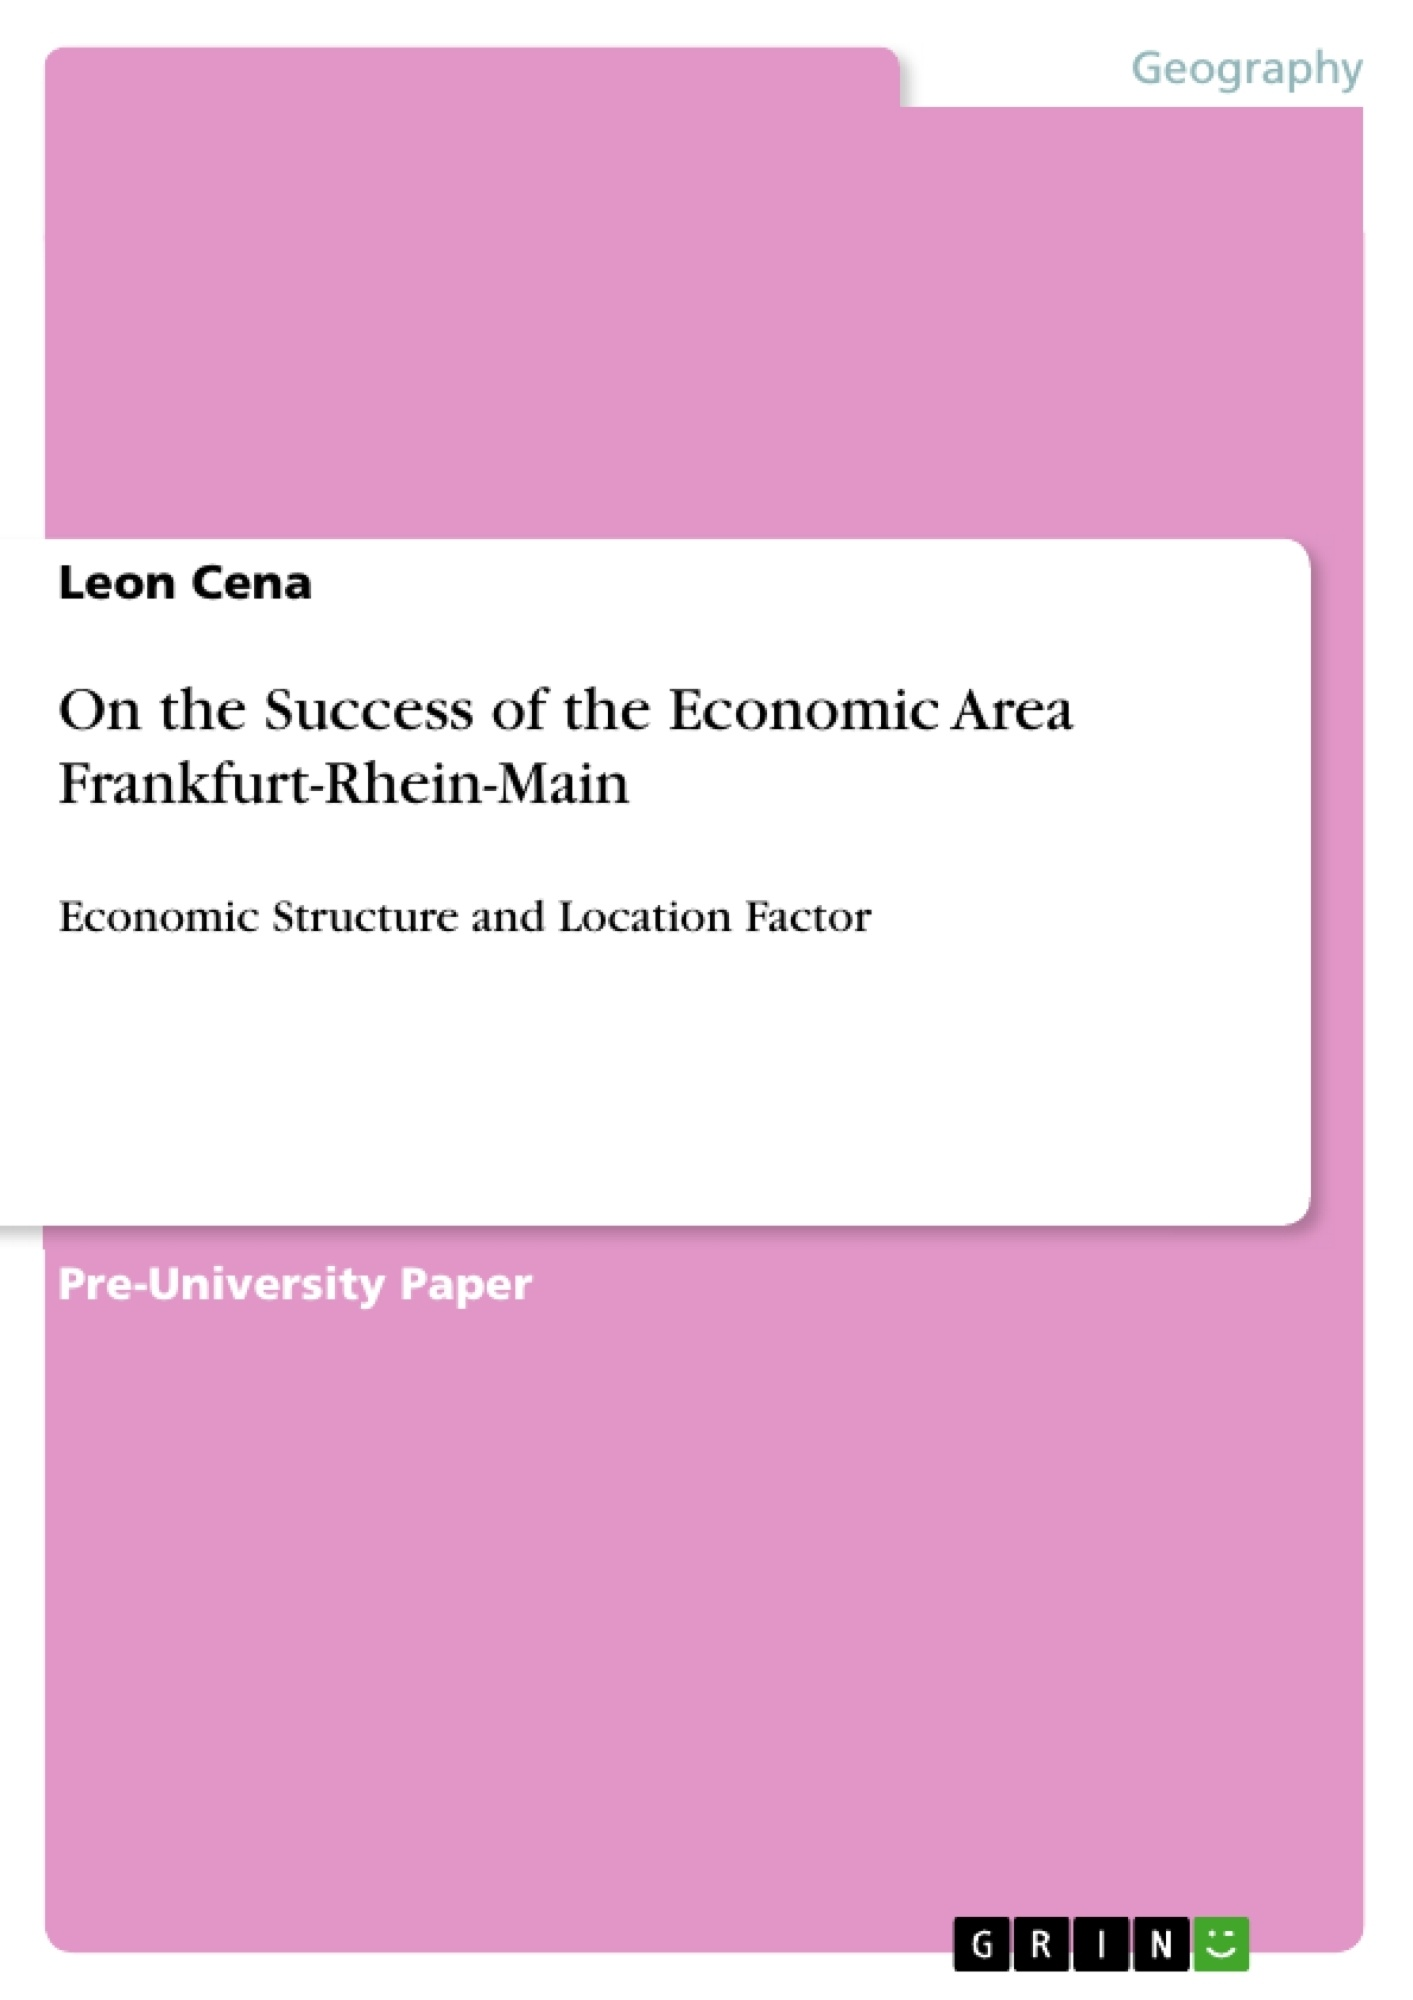 Title: On the Success of the Economic Area Frankfurt-Rhein-Main